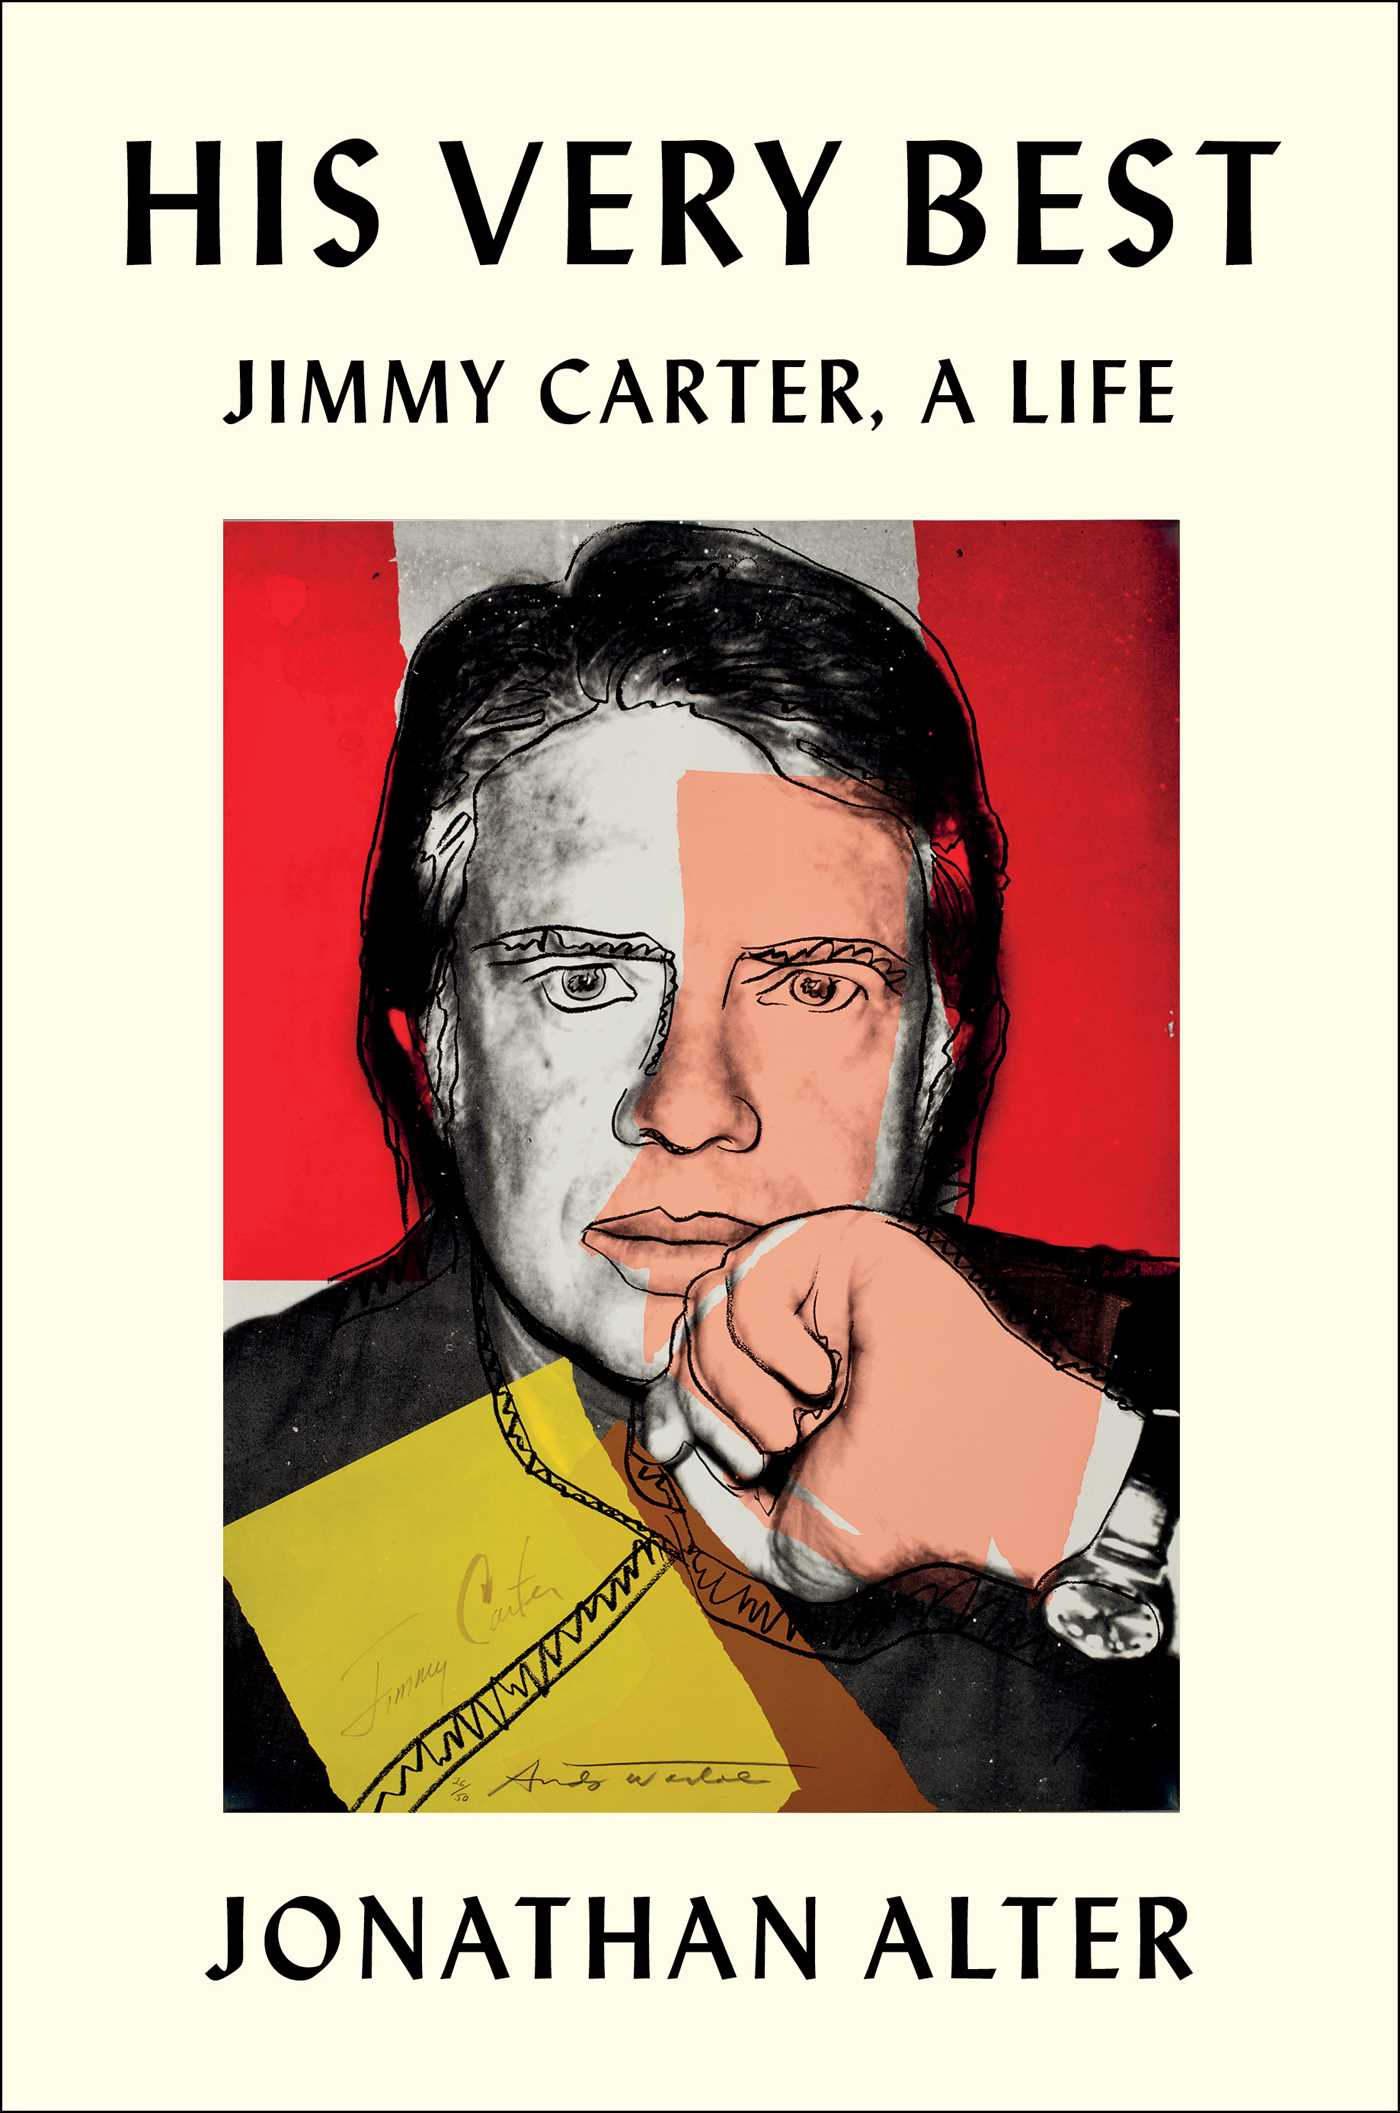 His Very Best: Jimmy Carter, a Life by Jonathan Alter